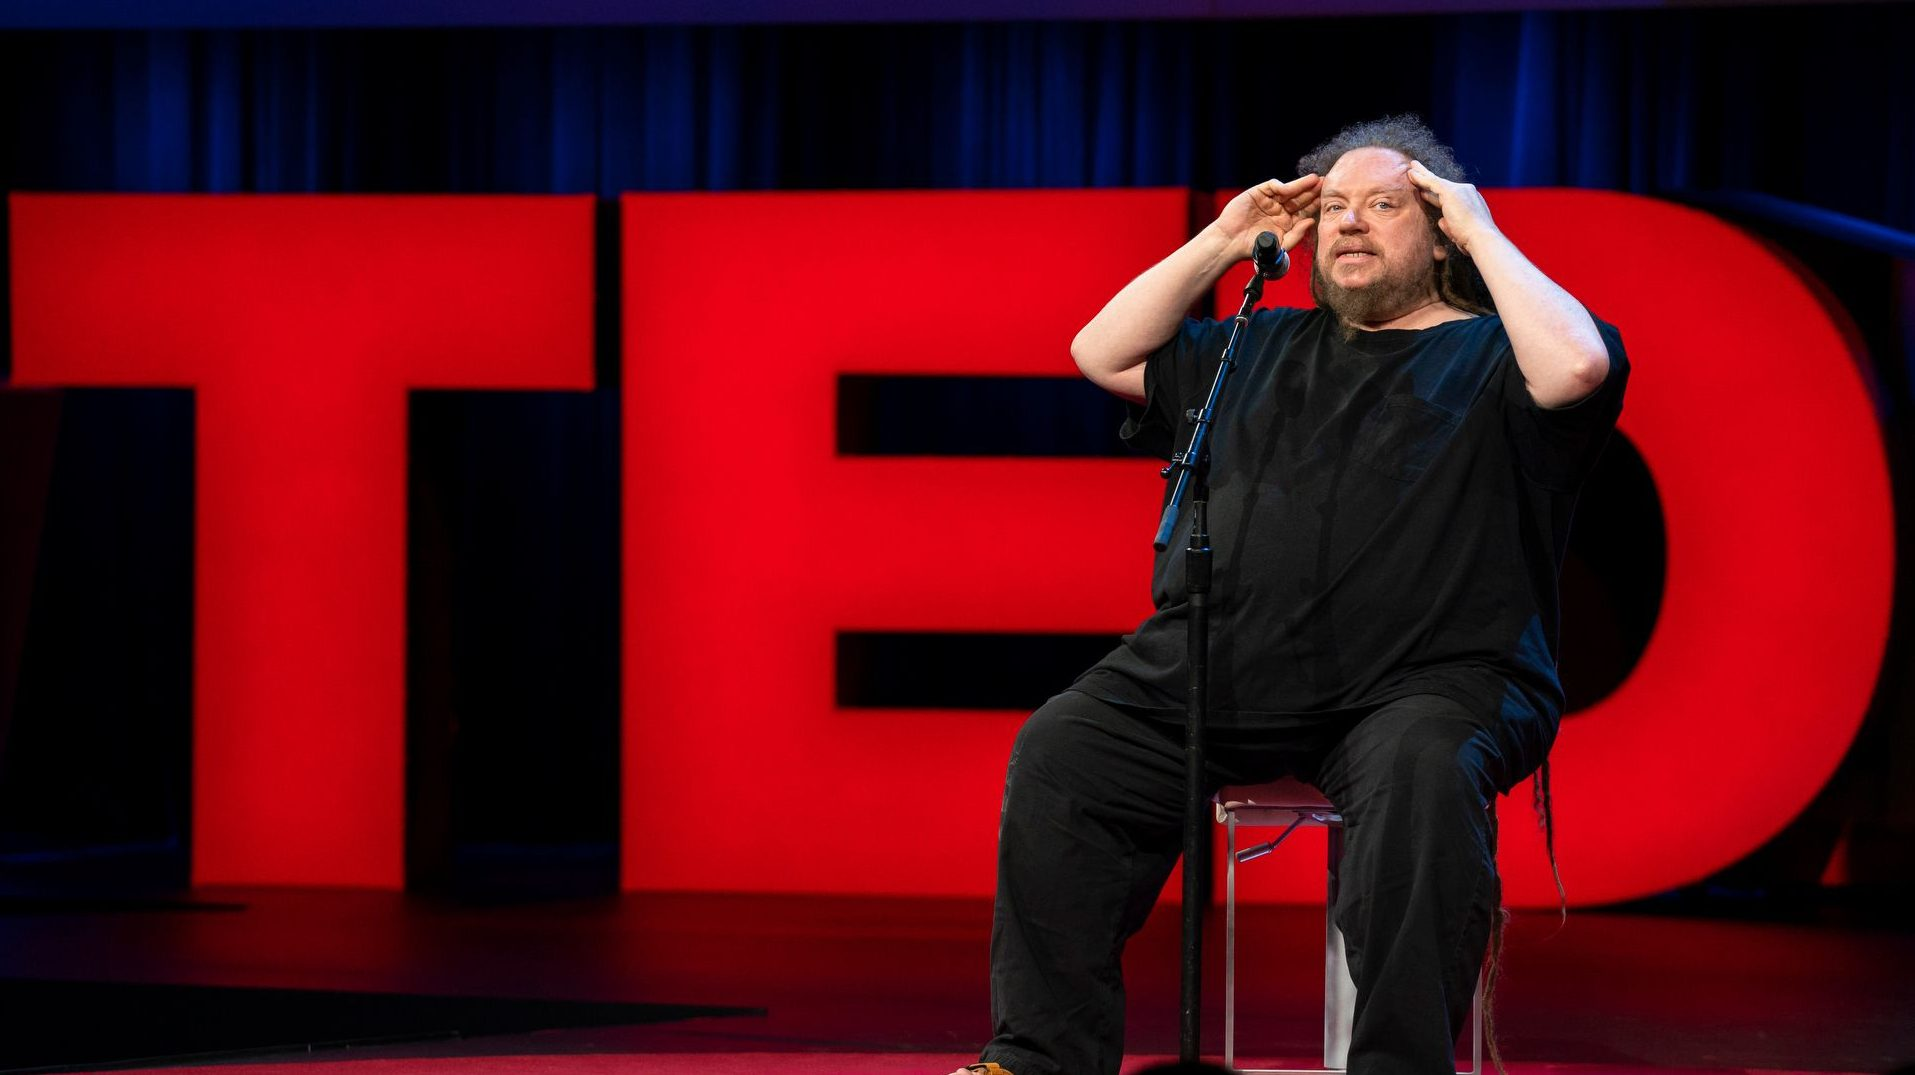 Jaron Lanier speaks at TED2018 - The Age of Amazement, April 10 - 14, 2018, Vancouver, BC, Canada. Photo: Bret Hartman / TED